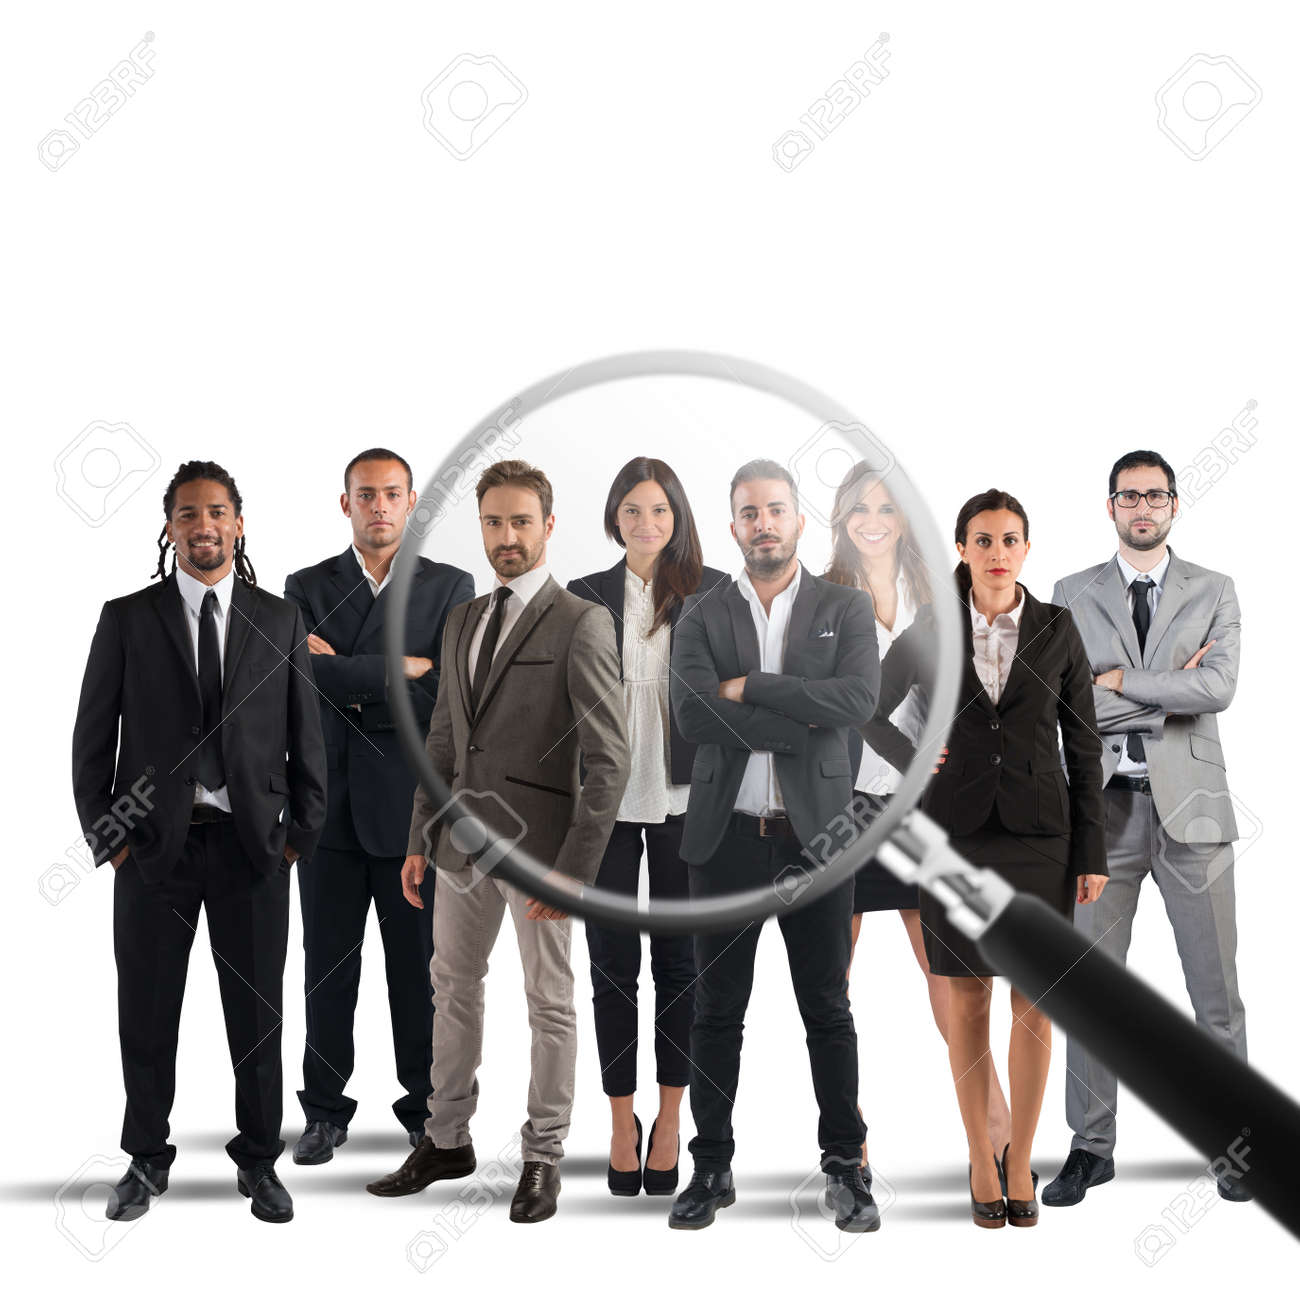 Magnify lens on a only a few suitable candidates to the workplace - 66522413